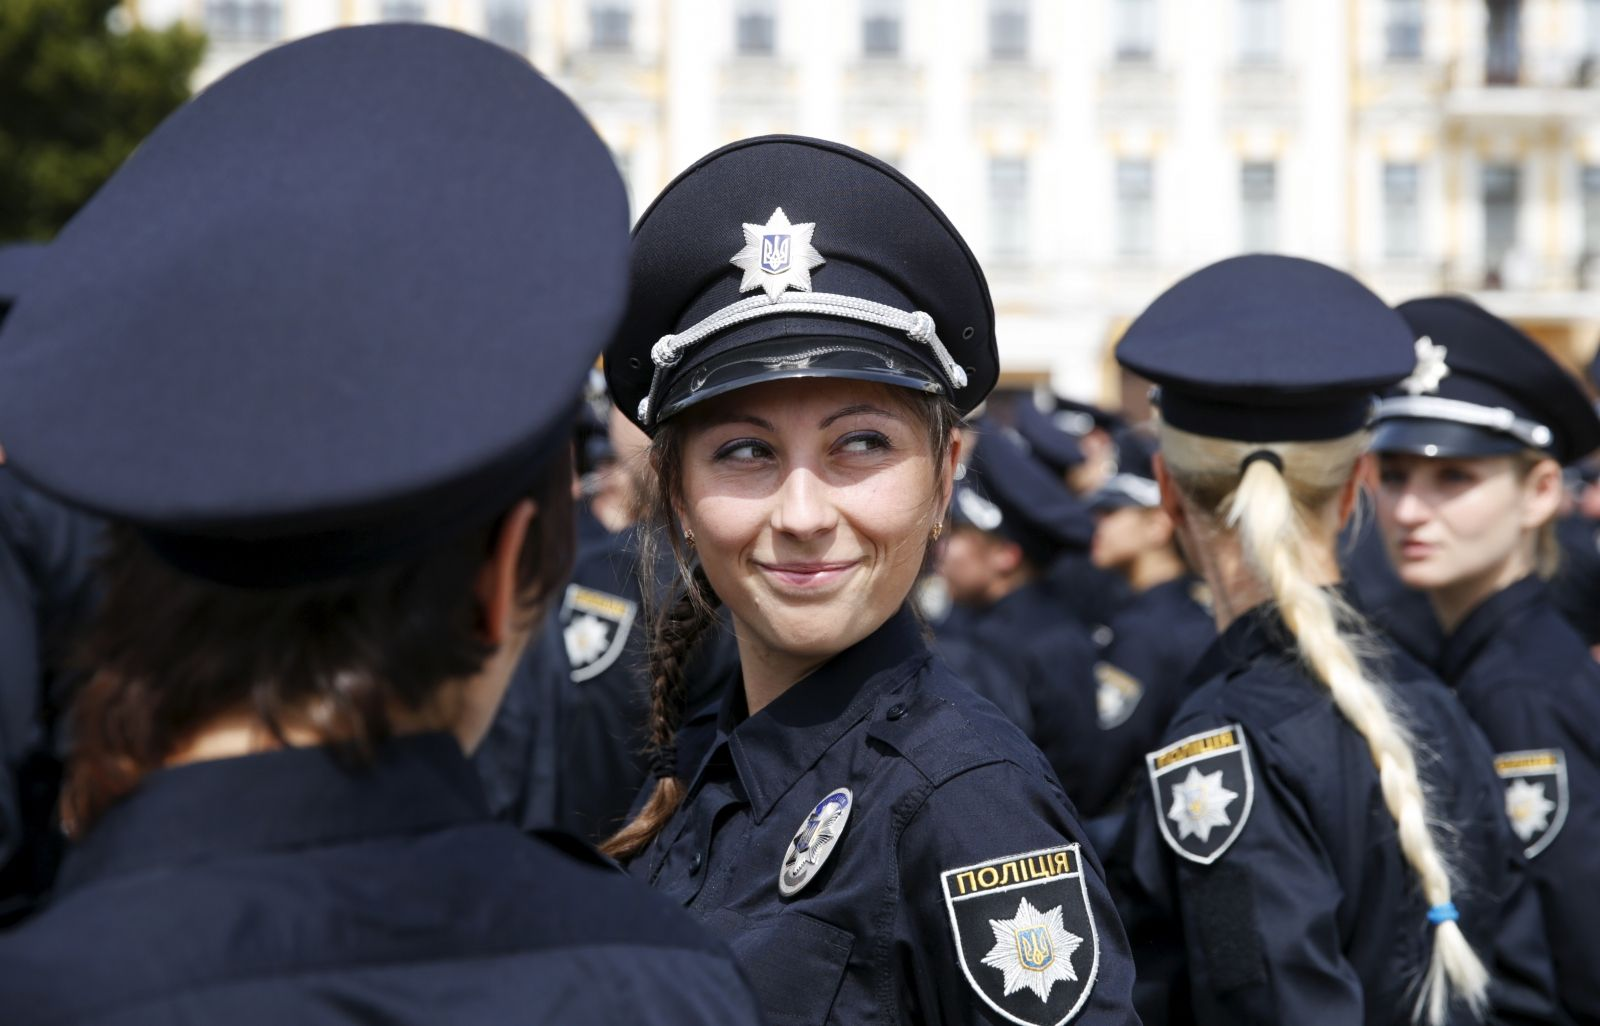 Kiev government hires beautiful police